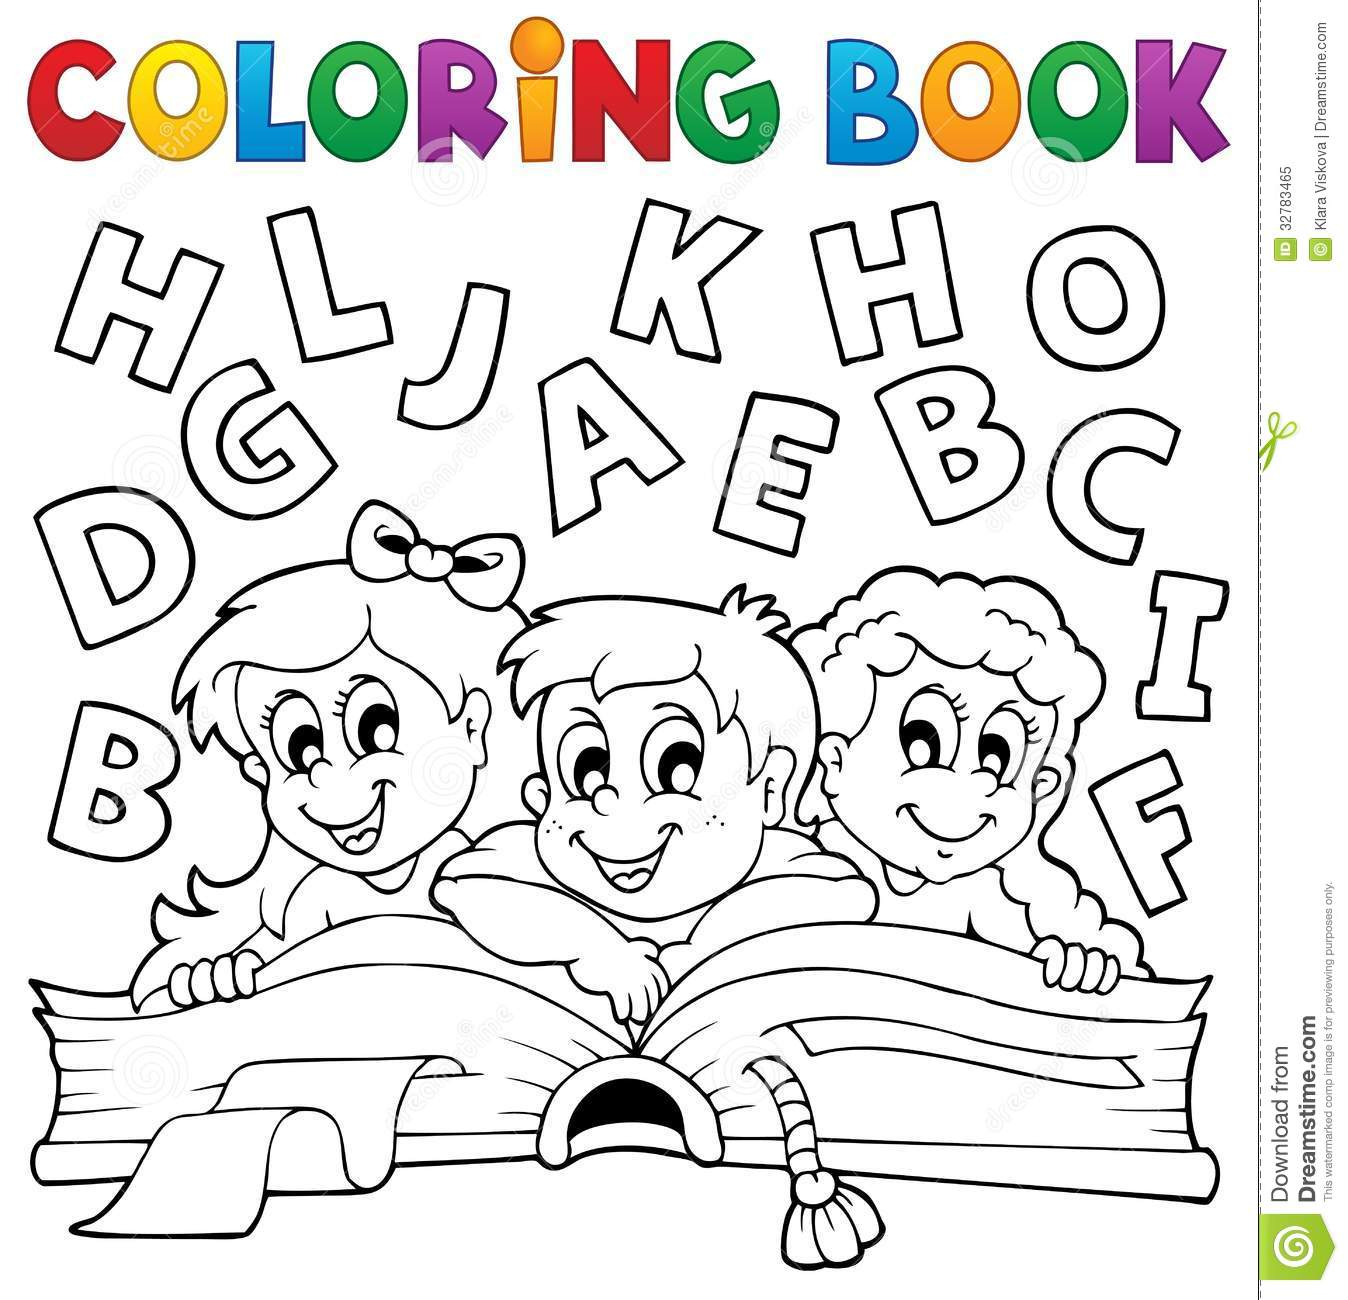 - Coloring Book Kids Theme 5 Stock Vector. Illustration Of Girl